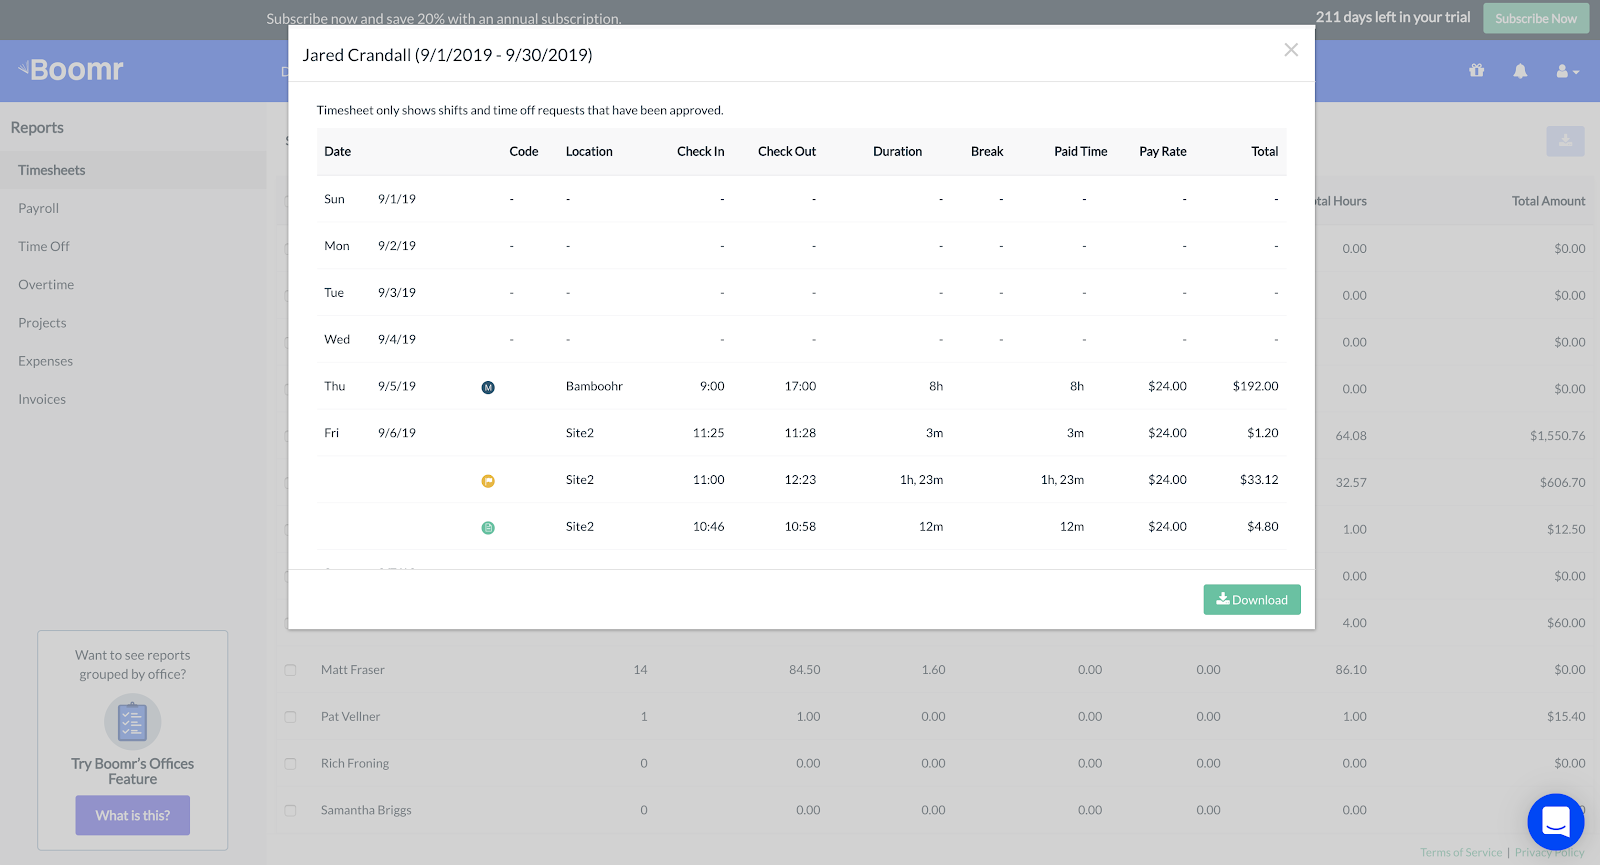 Screenshot showing the generated timesheets with all approved shifts for a specified date range